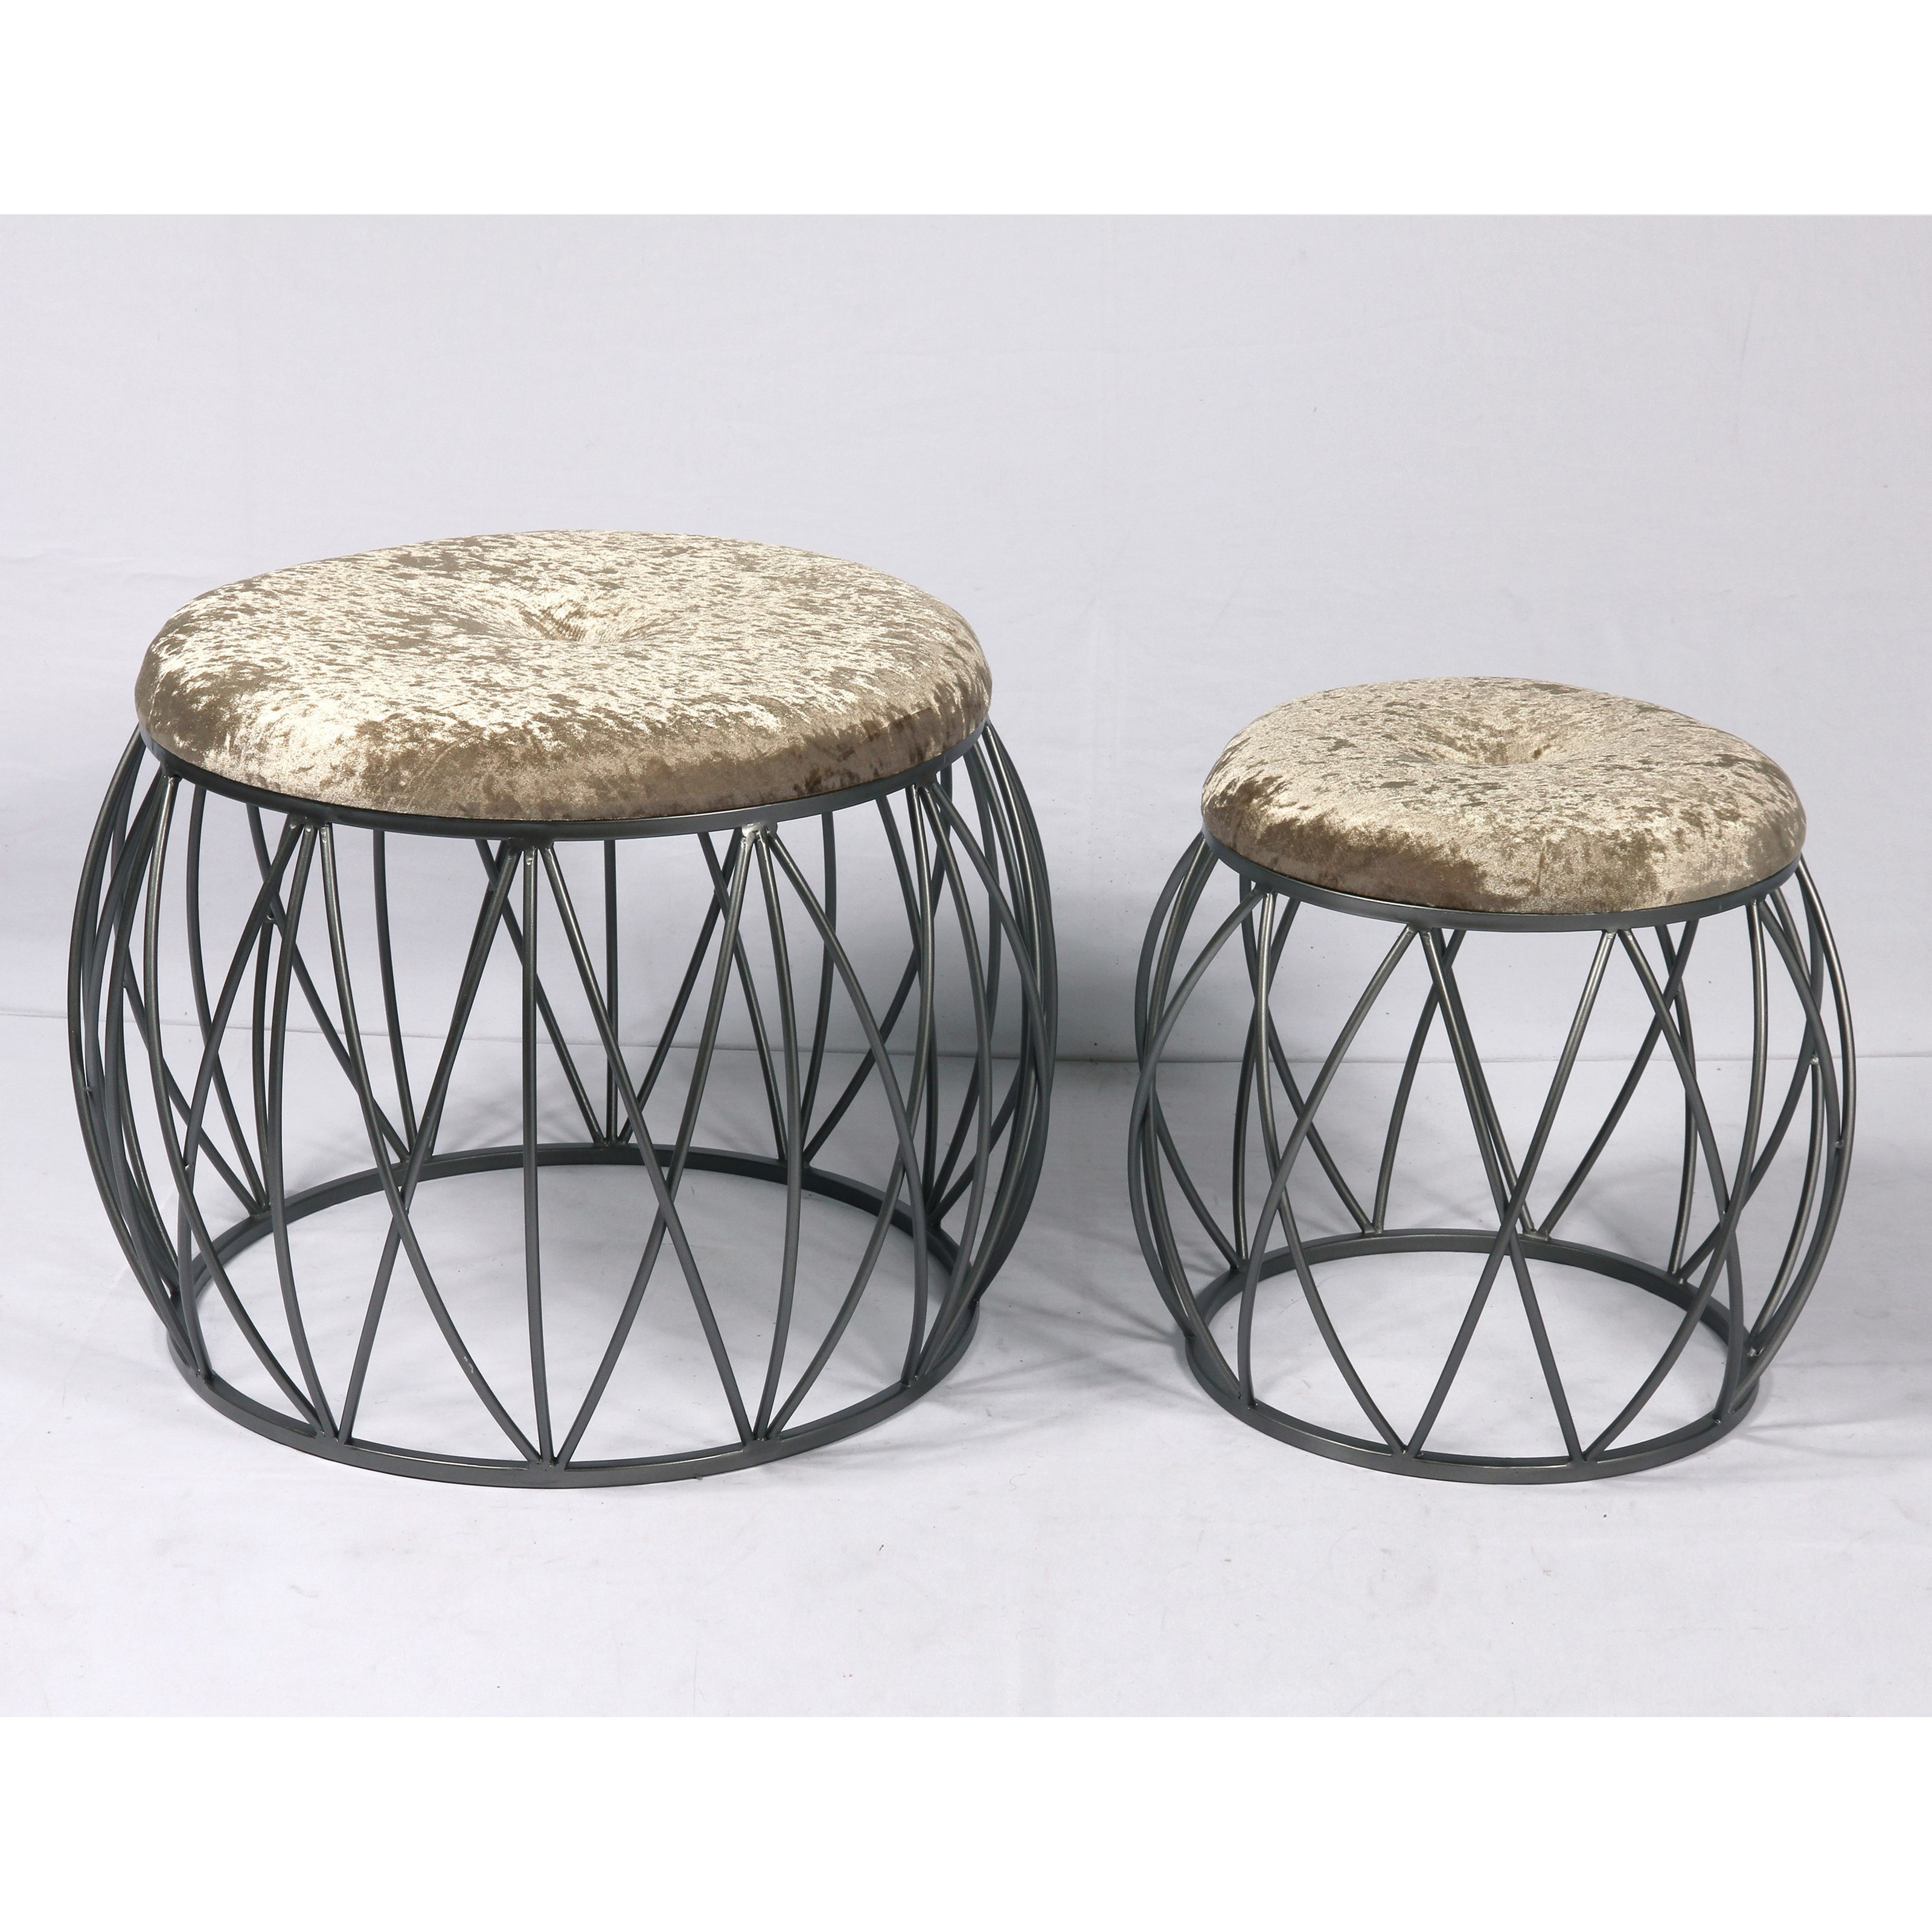 Sorrento 2Pc Set of Stools by Emerald at Northeast Factory Direct